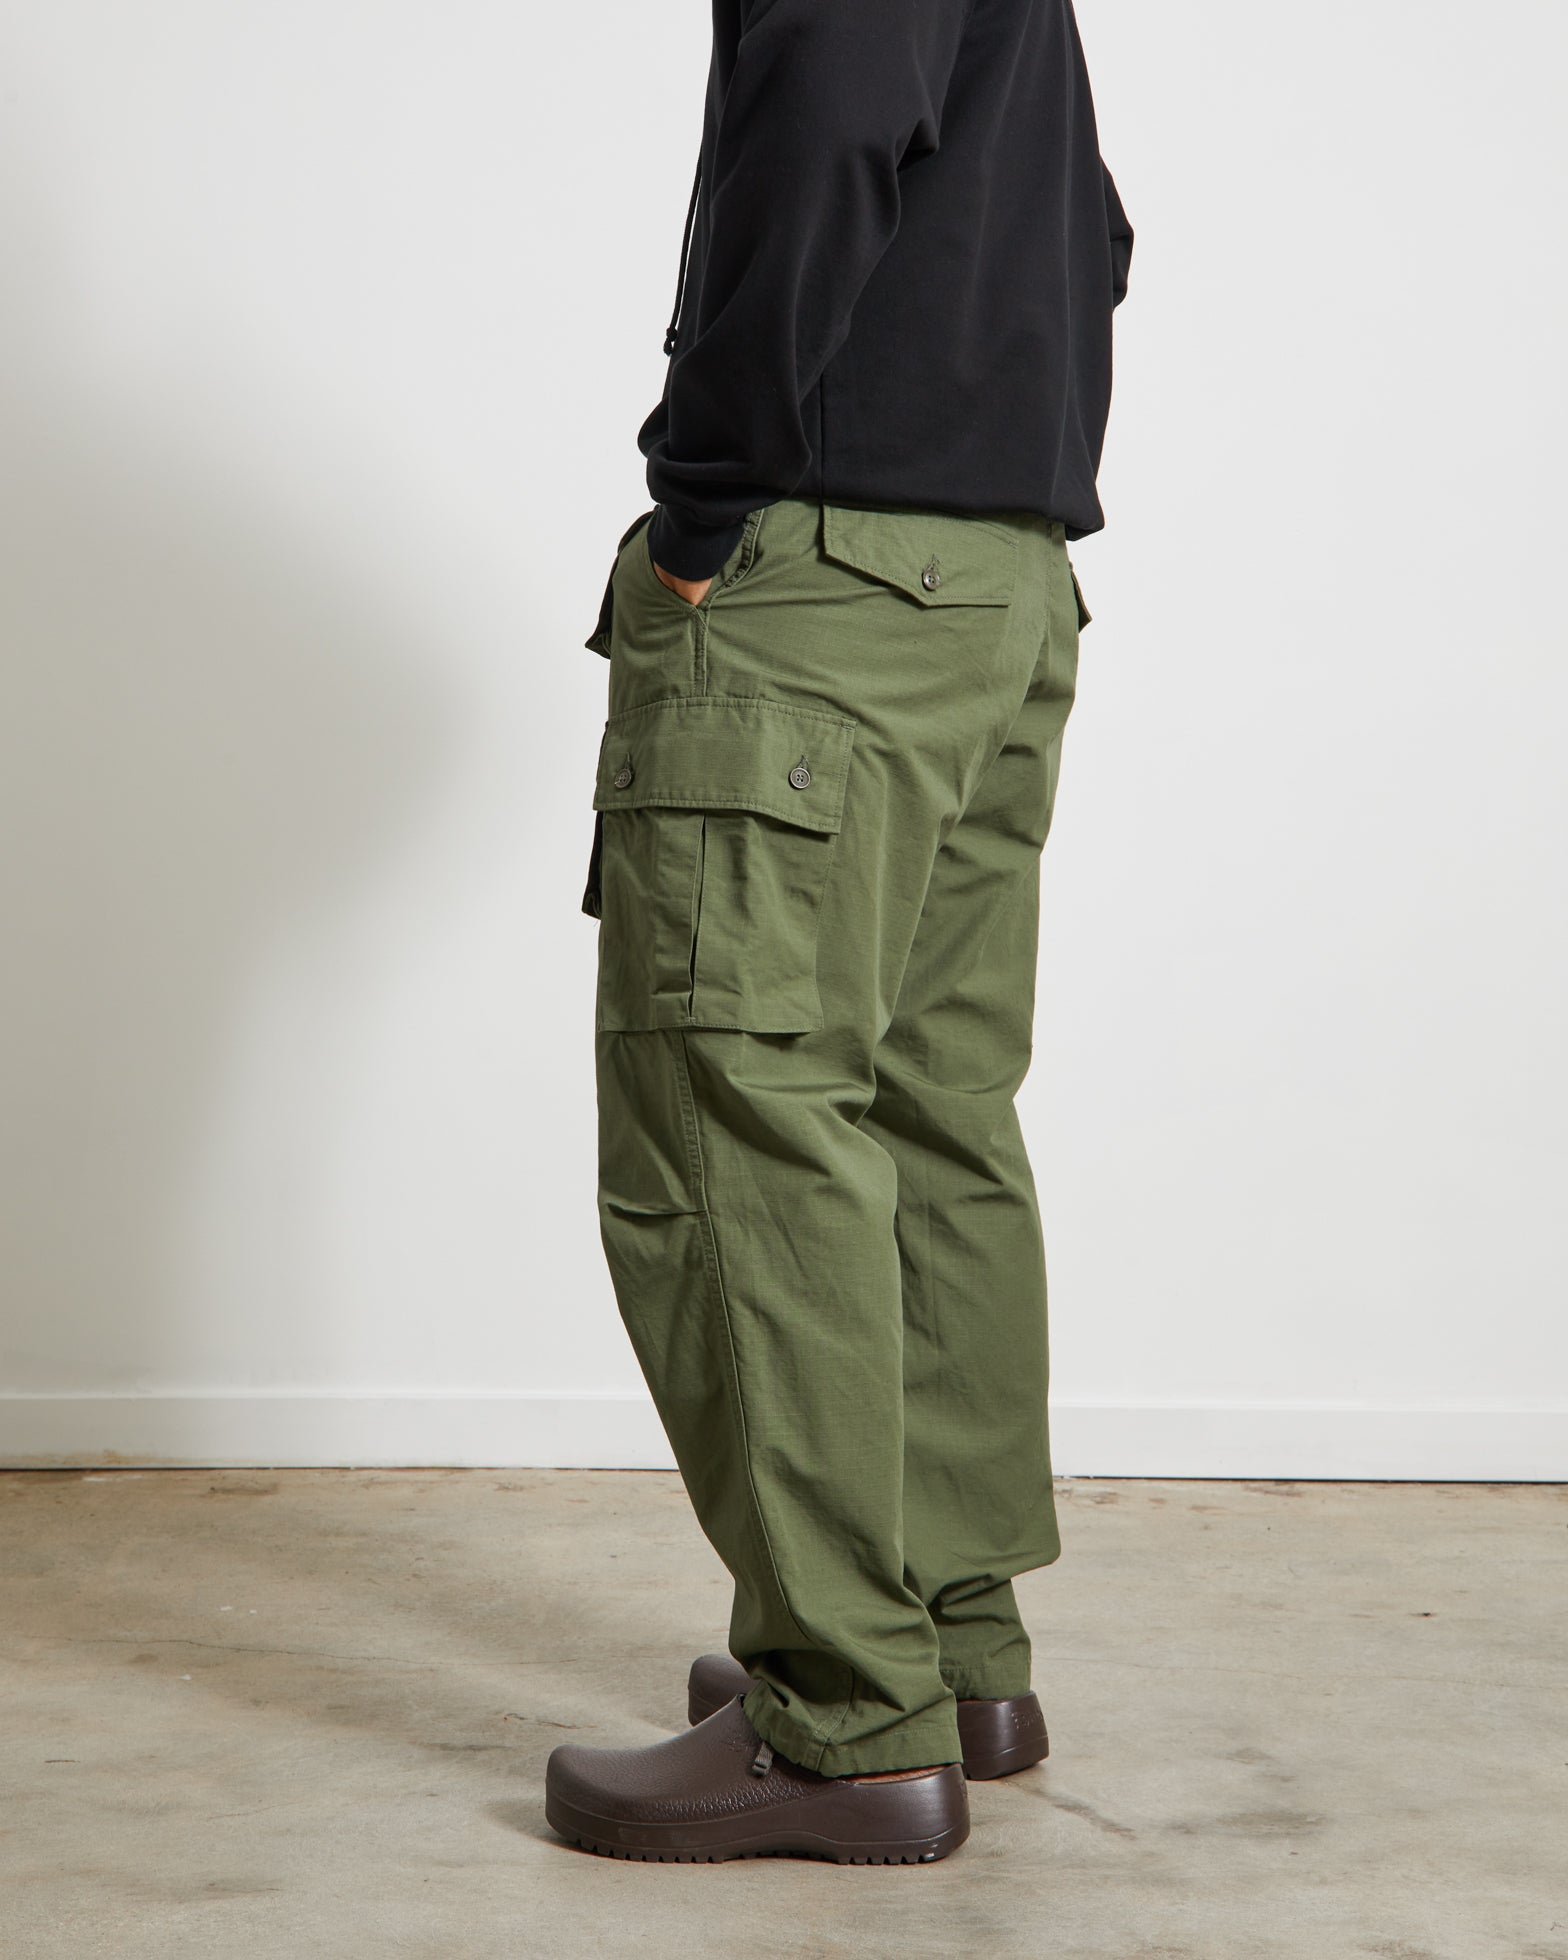 Ripstop FA Pant in Olive